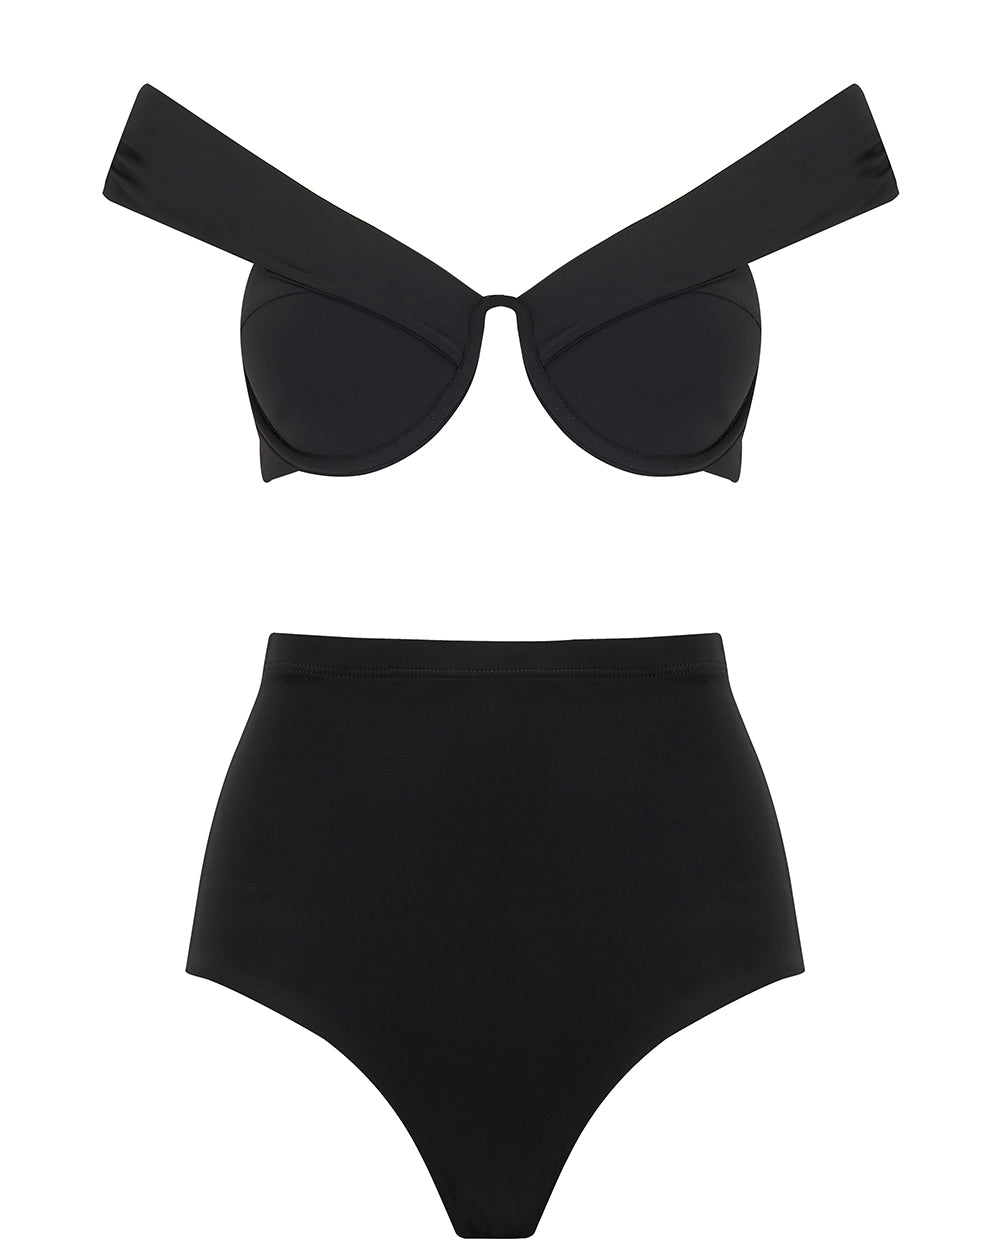 The Bardot Bustier Set - True Black